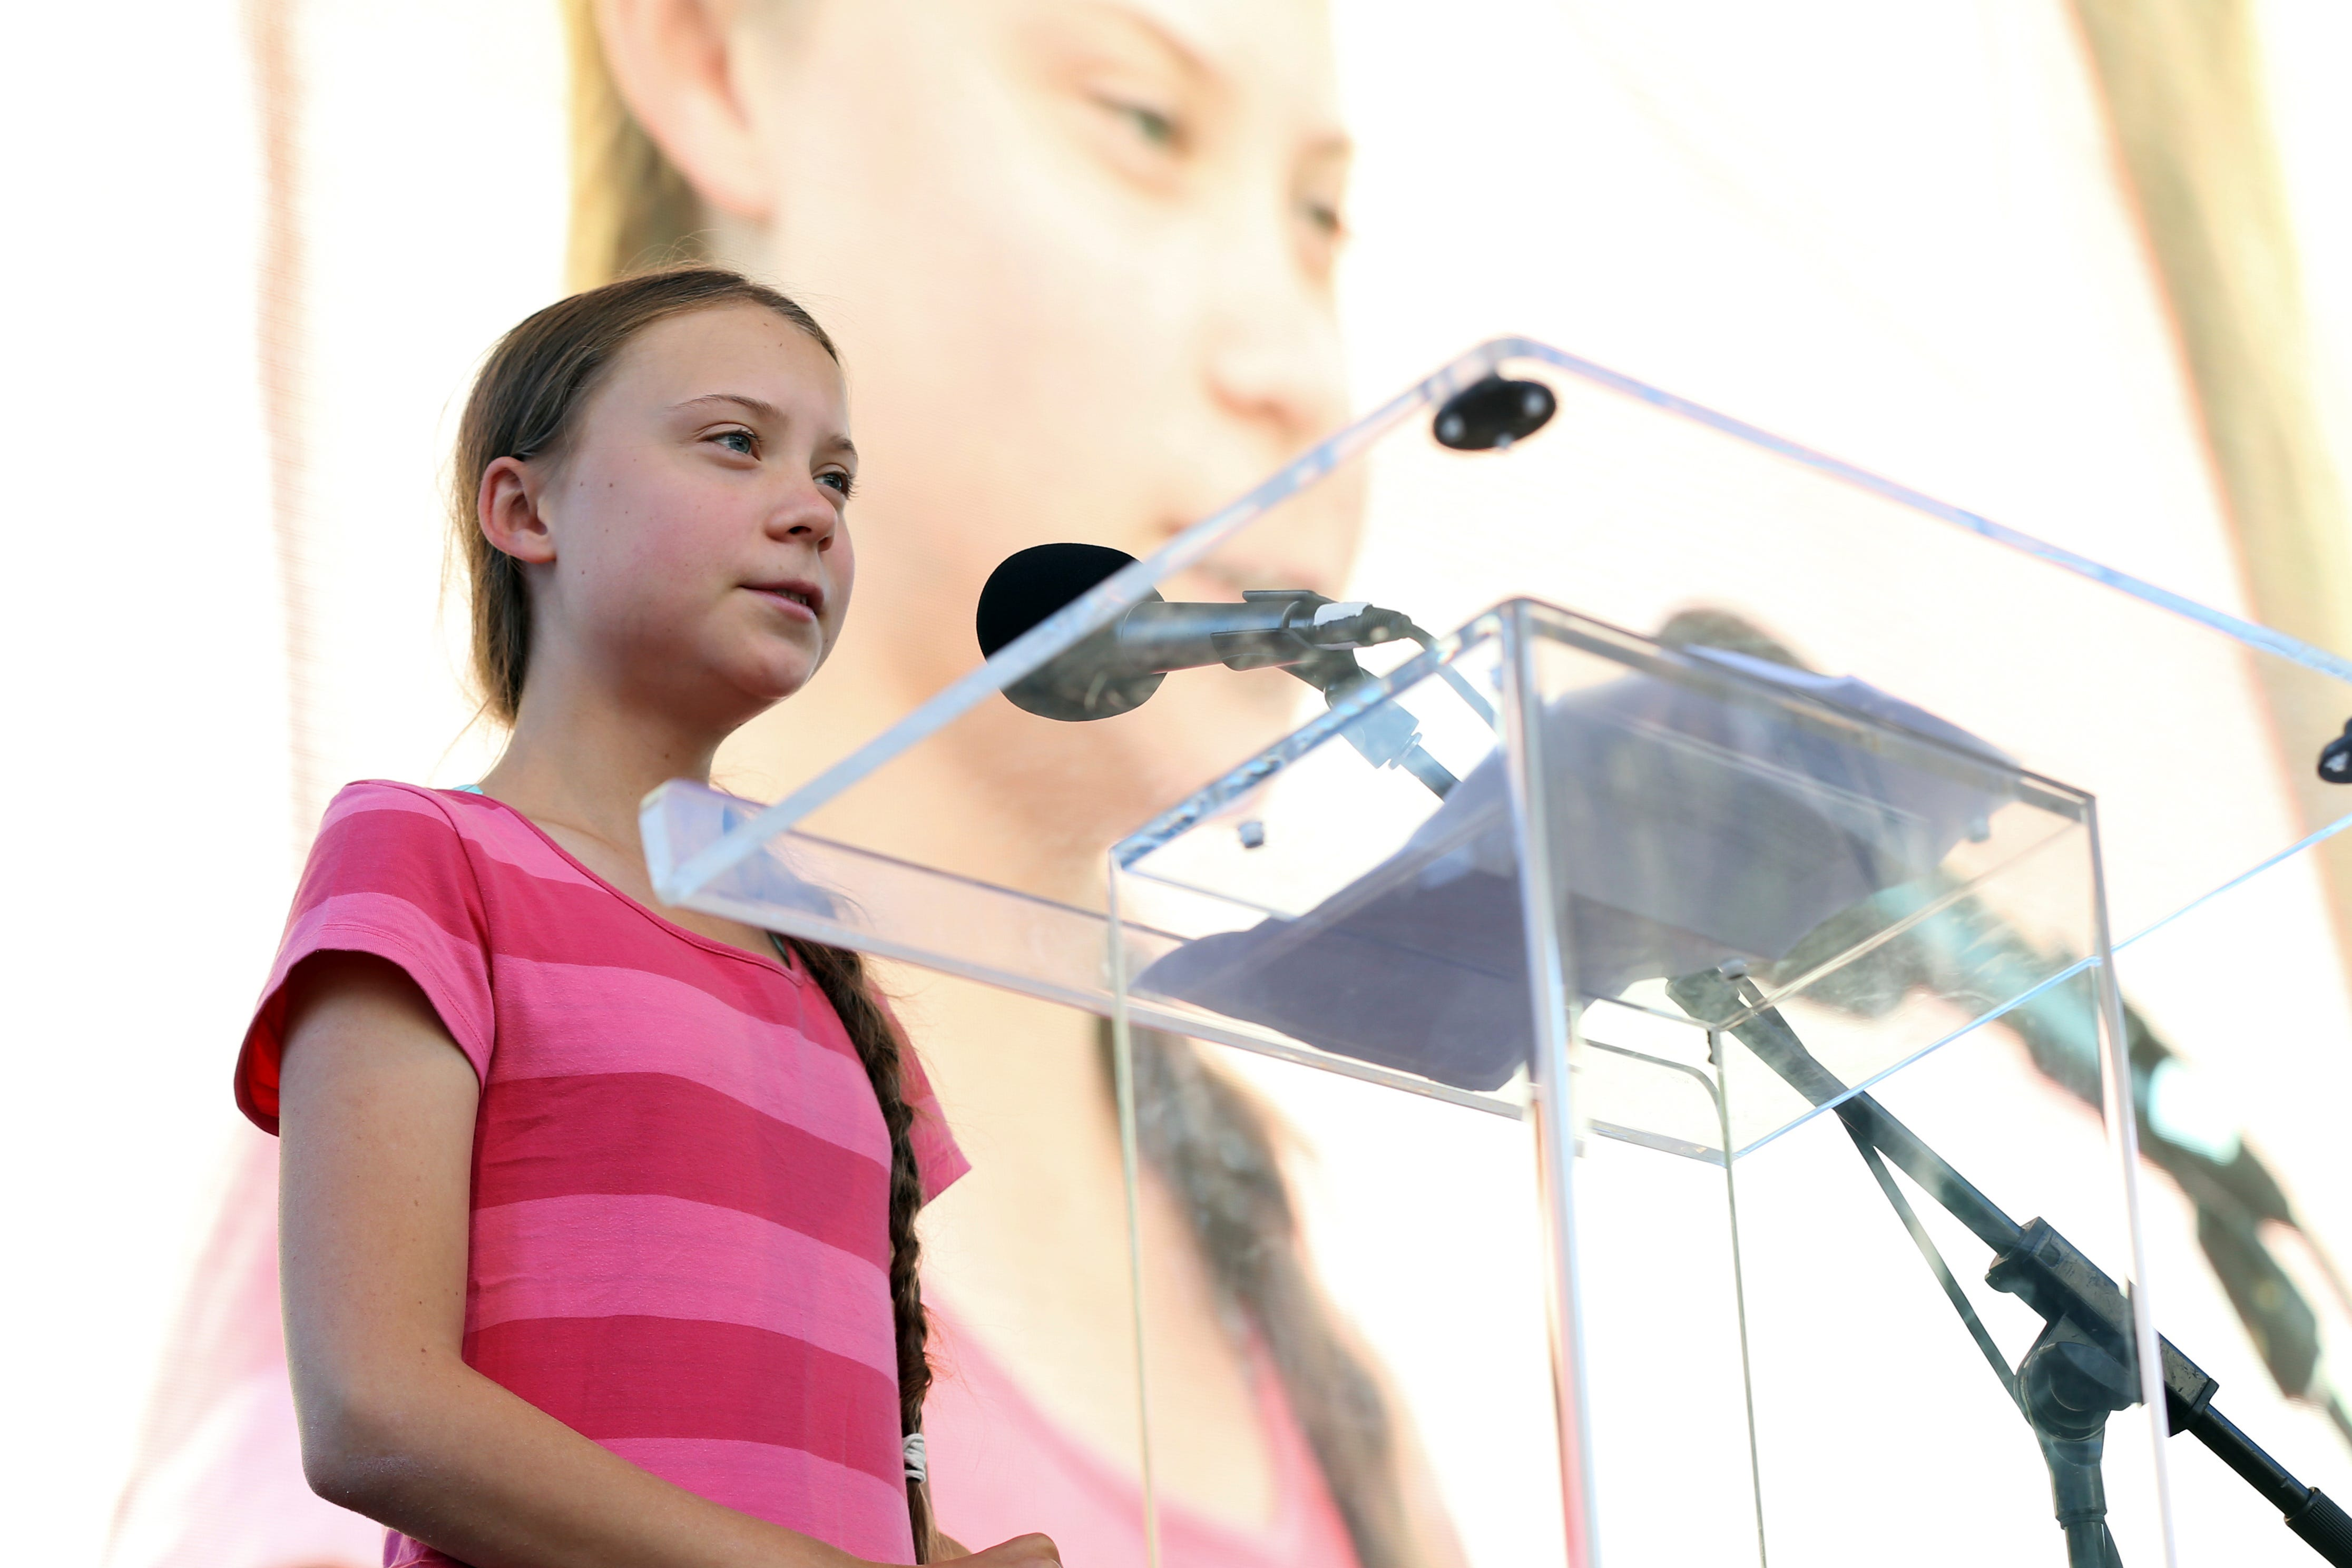 Greta Thunberg to join Iowa City climate protest, started by a middle school student